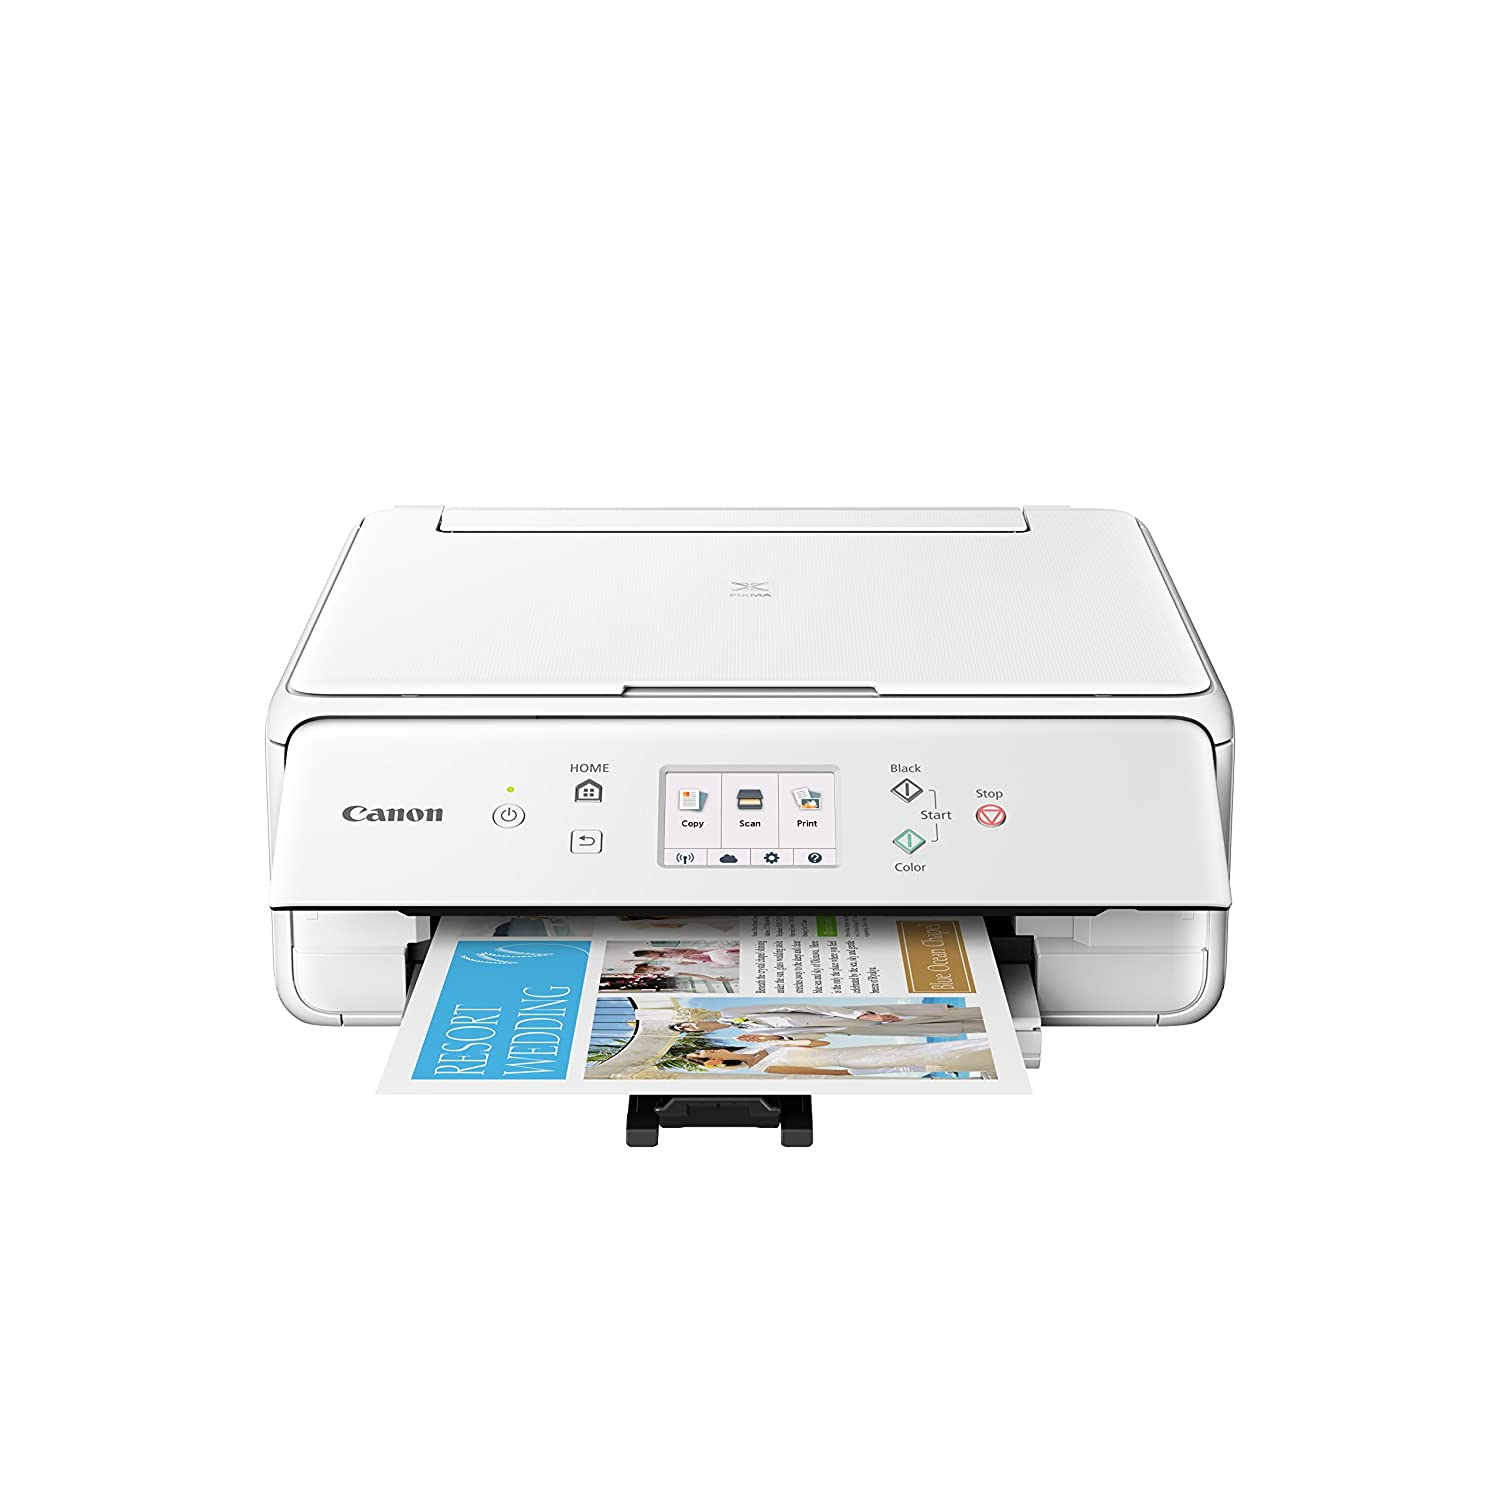 Canon PIXMA TS6120 Wireless Color Photo Printer with Scanner & Copier - Black, and CLI-280XXL Black Ink bundle